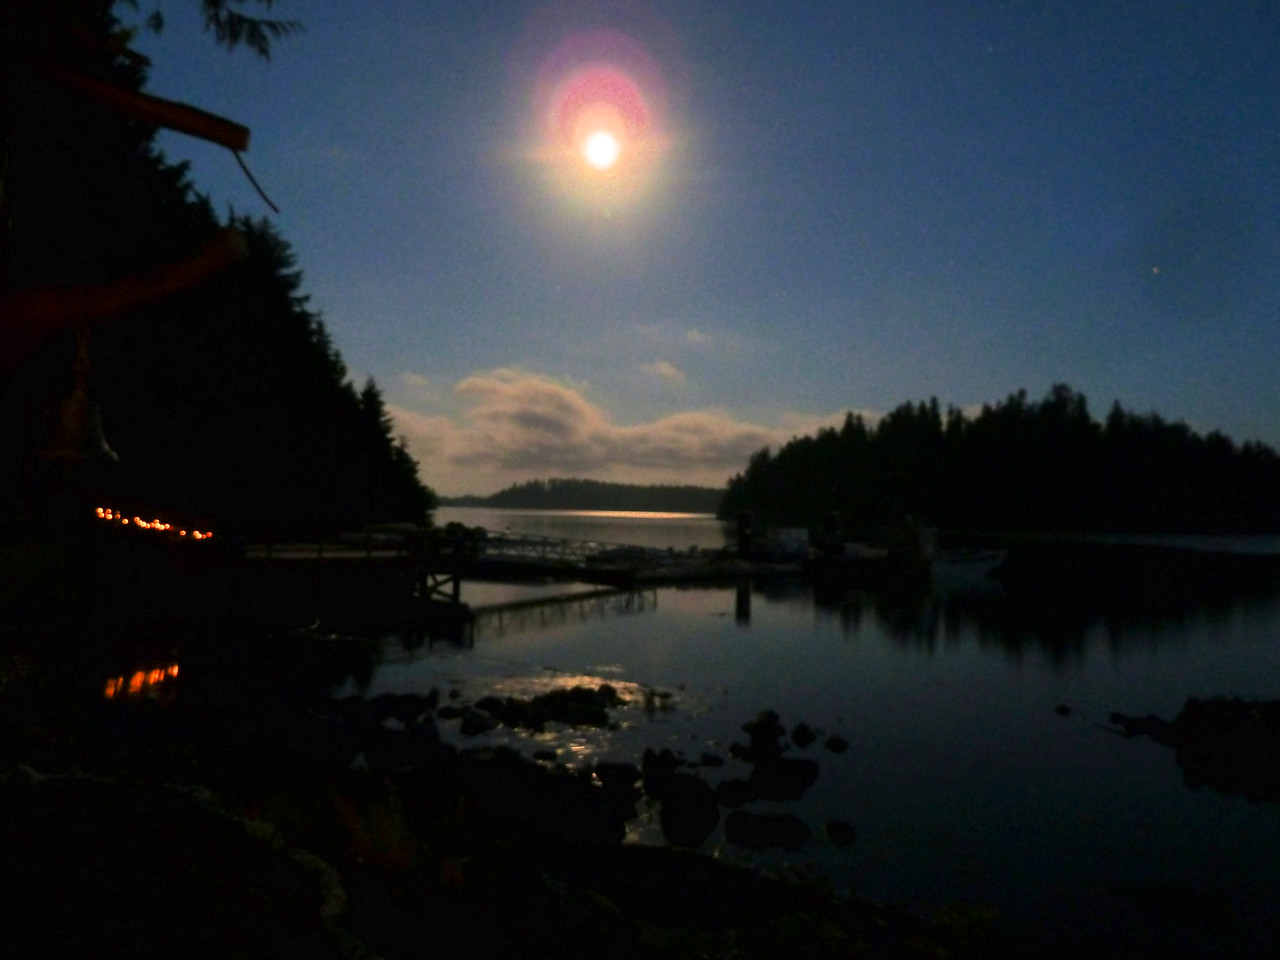 A spectaular super moon at Sechart Lodge.